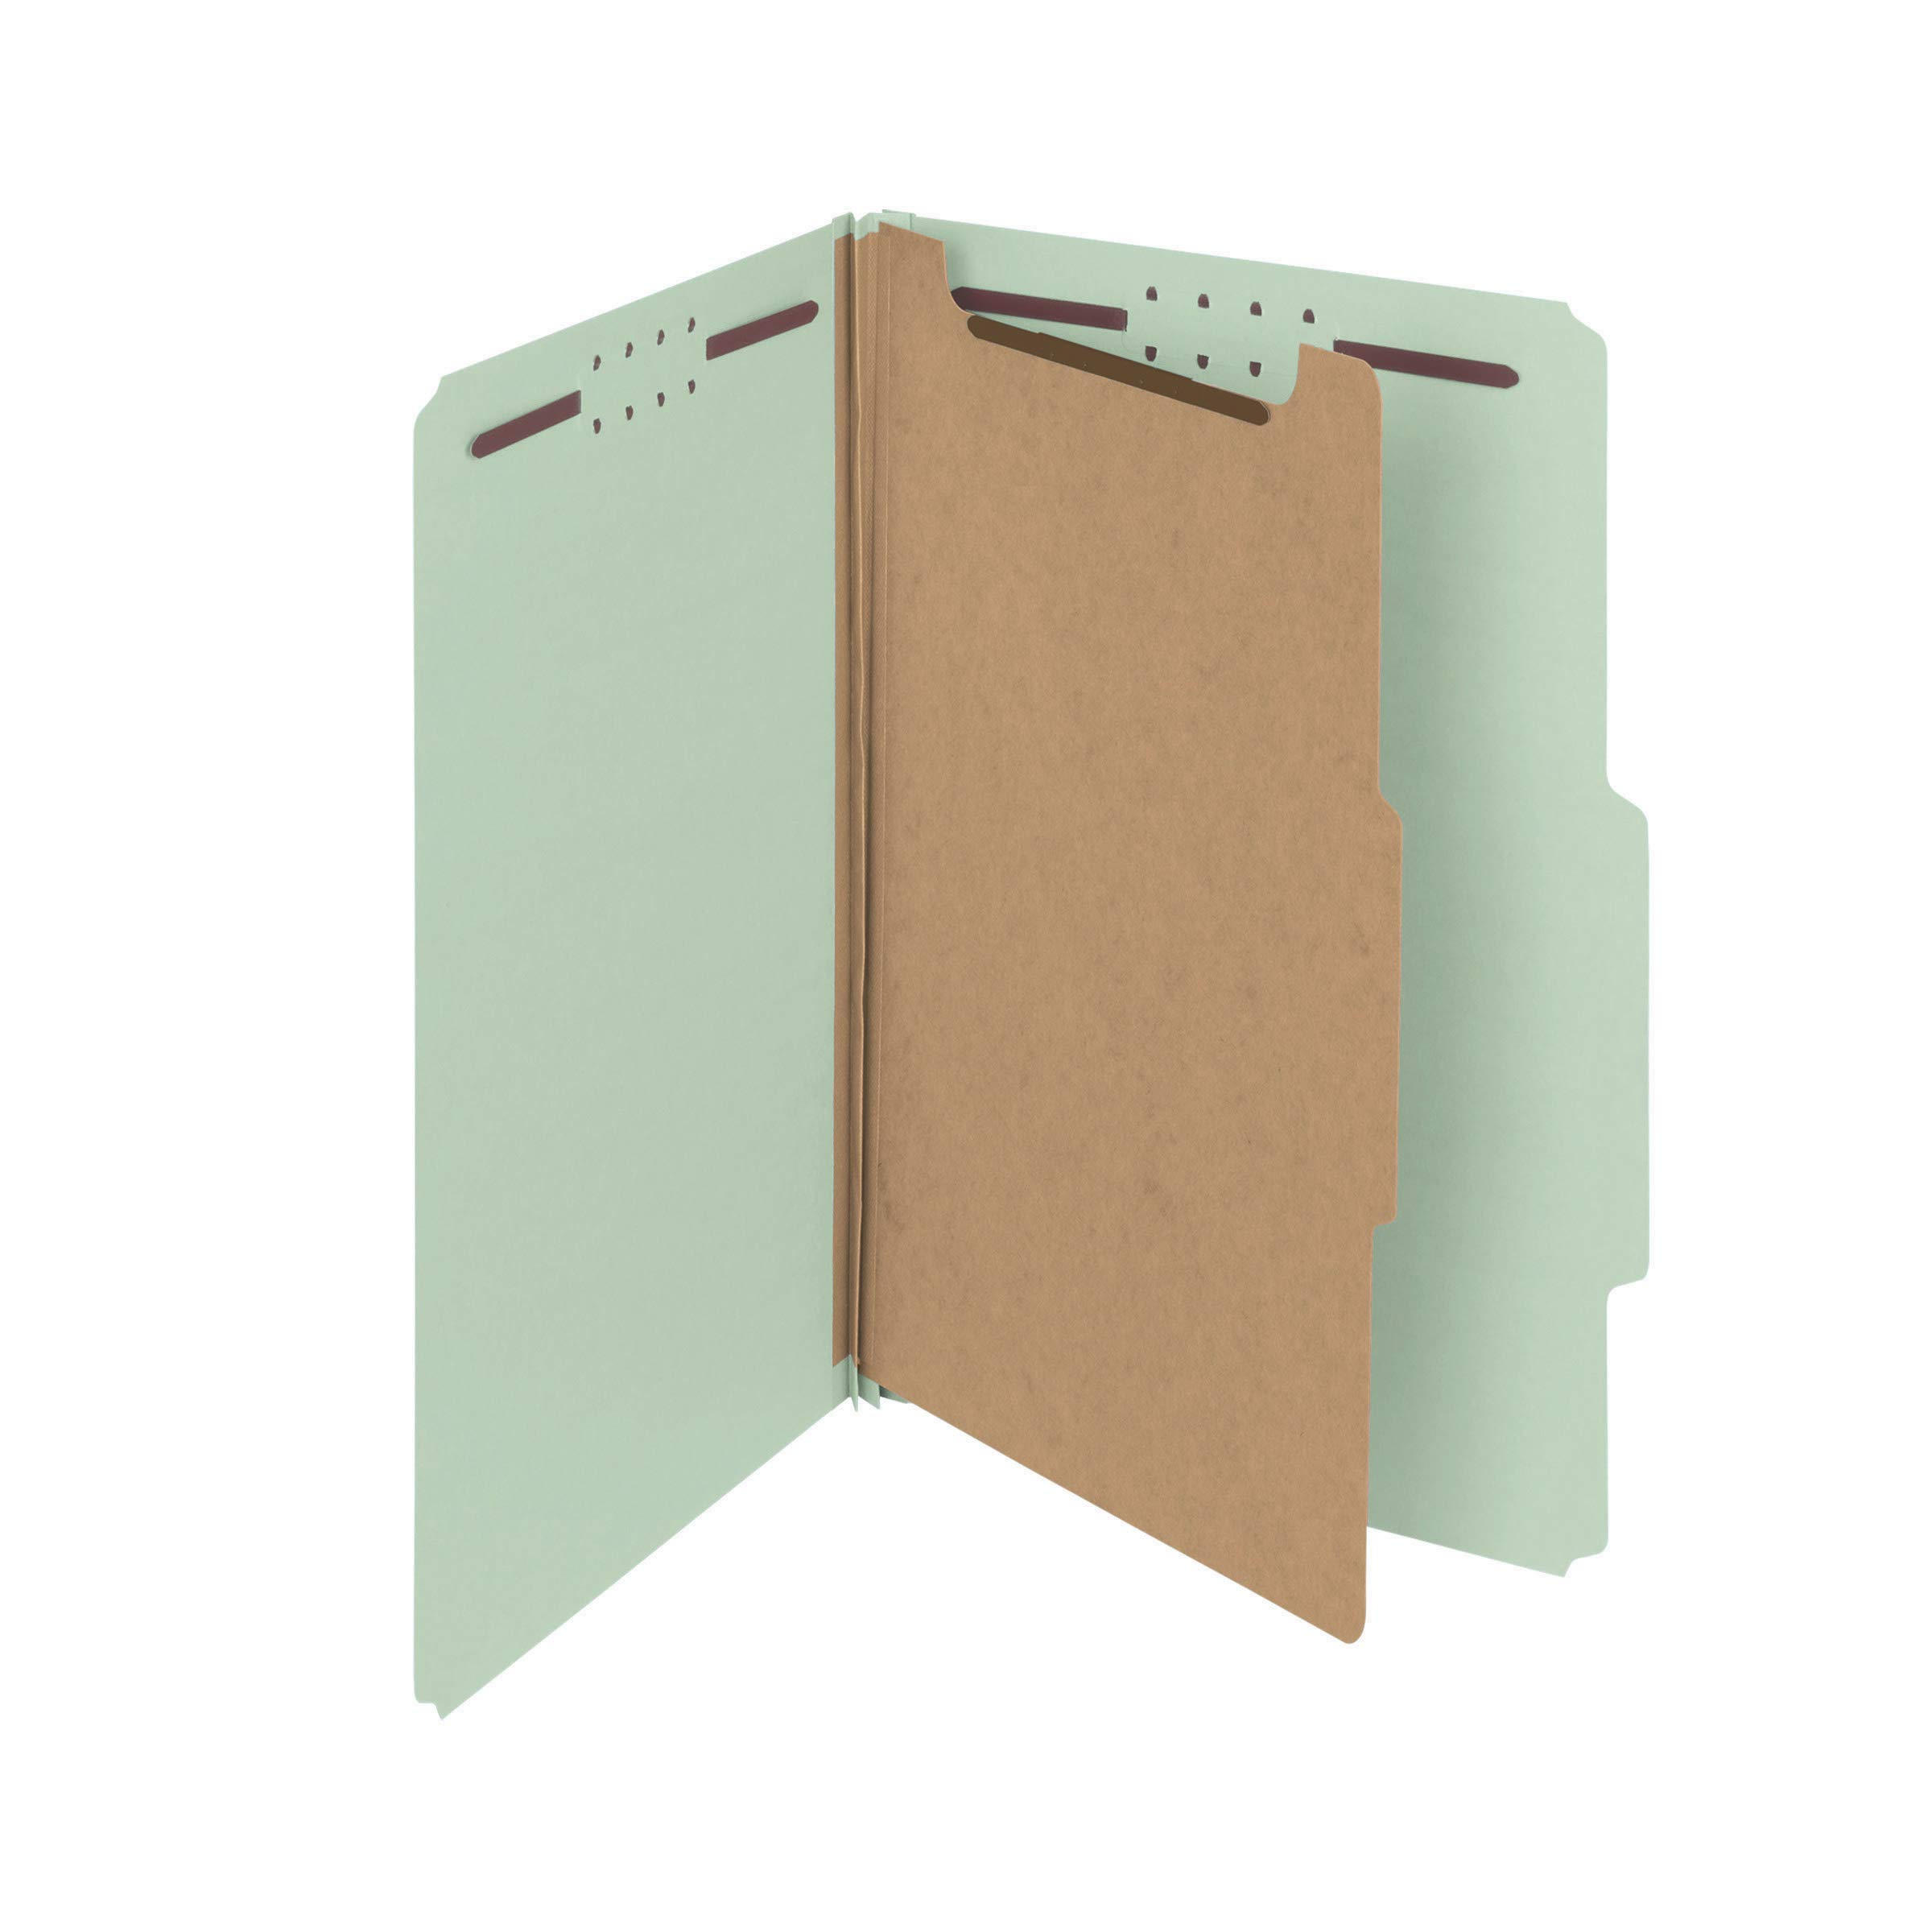 Smead 100% Recycled Pressboard Classification File Folder, 1 Divider, 2'' Expansion, Legal Size, Gray/Green, 10 per Box (18722) by Smead